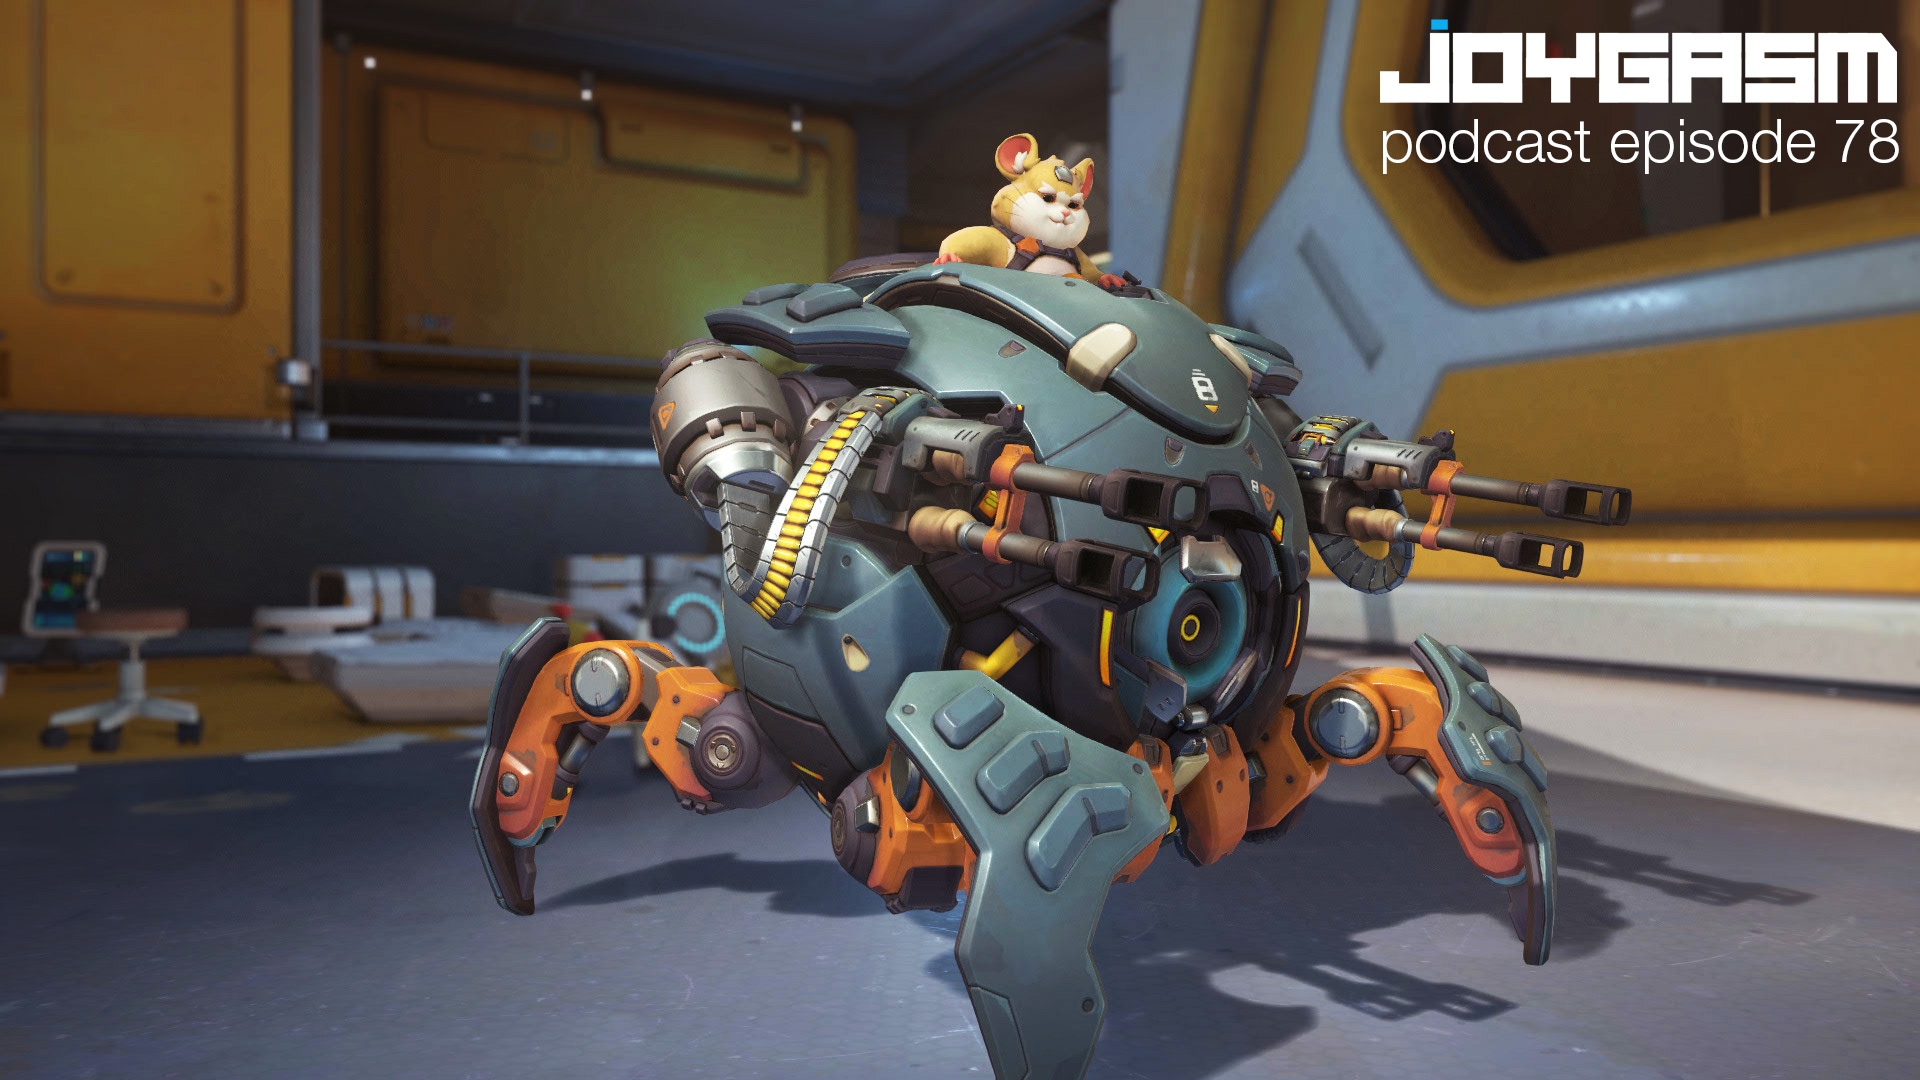 Ep. 78: New Overwatch Hero Wrecking Ball, Tons of Movie News, & More